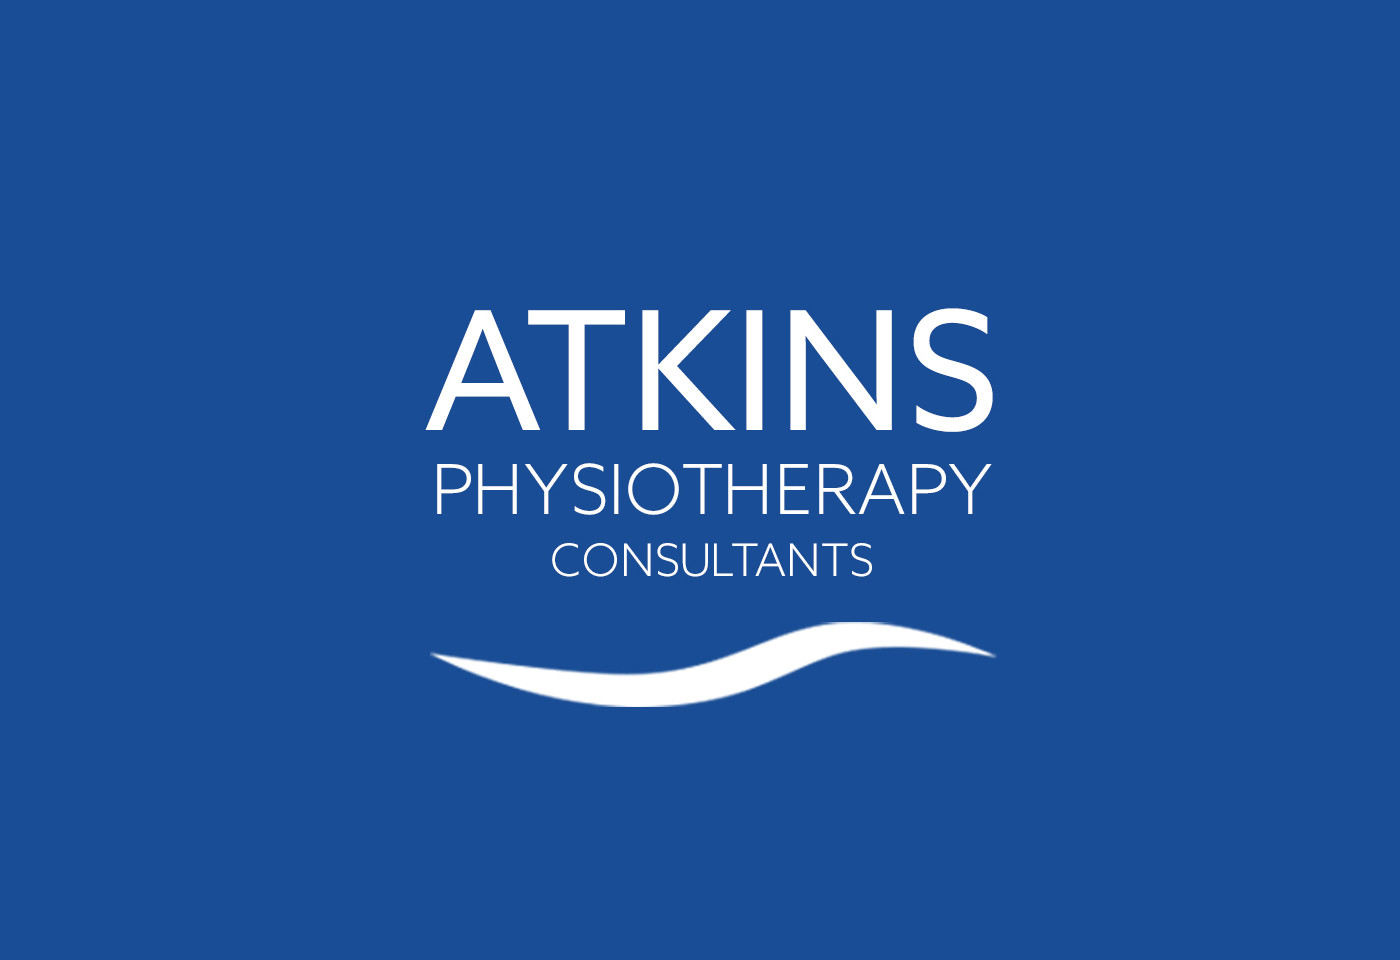 Atkins Physiotherapy